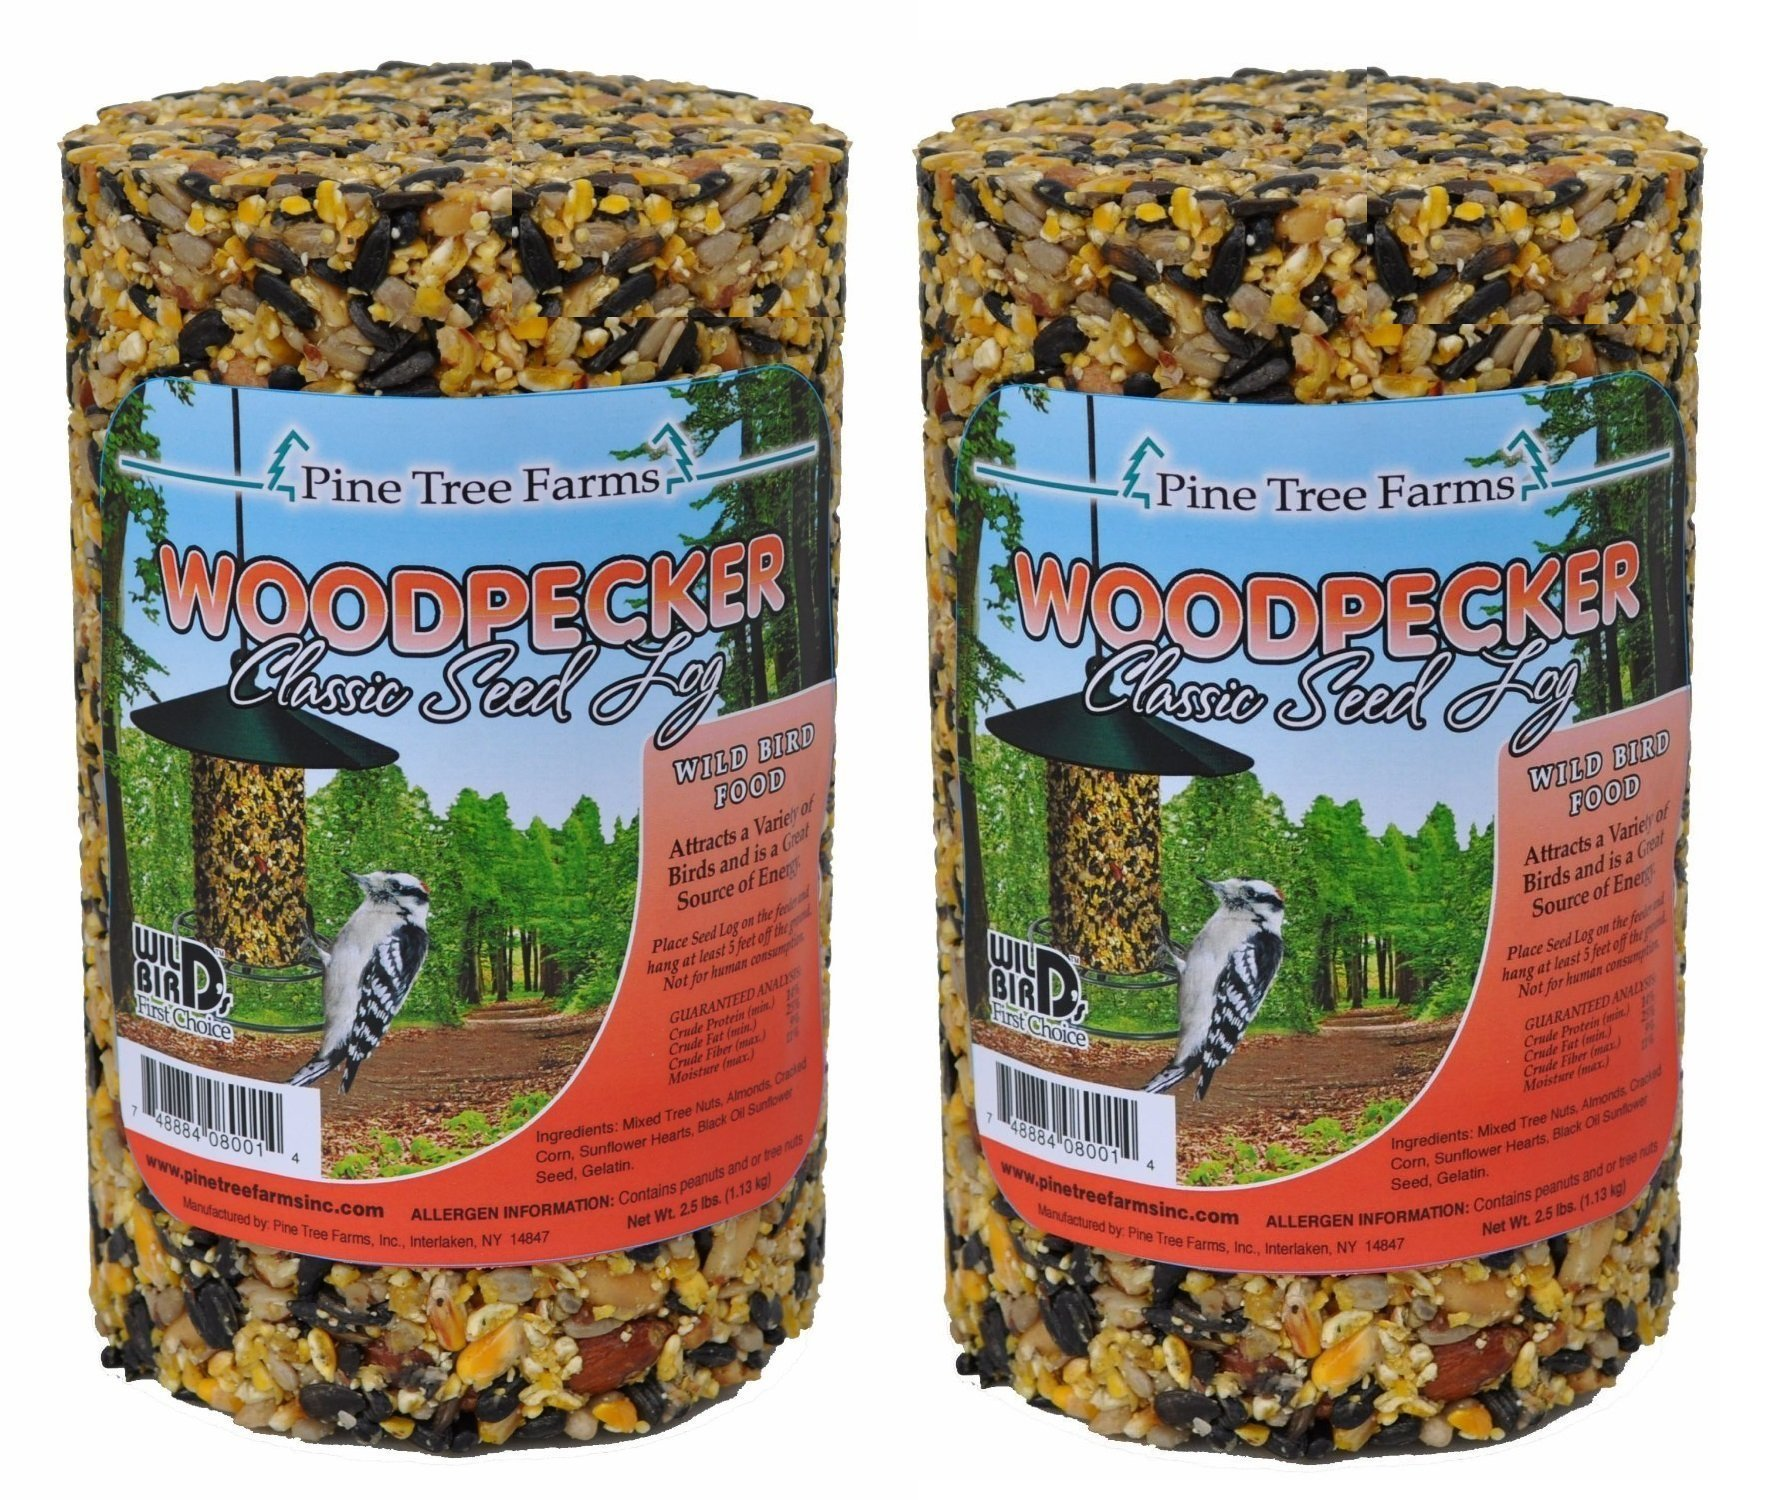 Pine Tree Farm Woodpecker Classic Seed Log, 40-Ounce (Pack of 2) by Pine Tree Farms